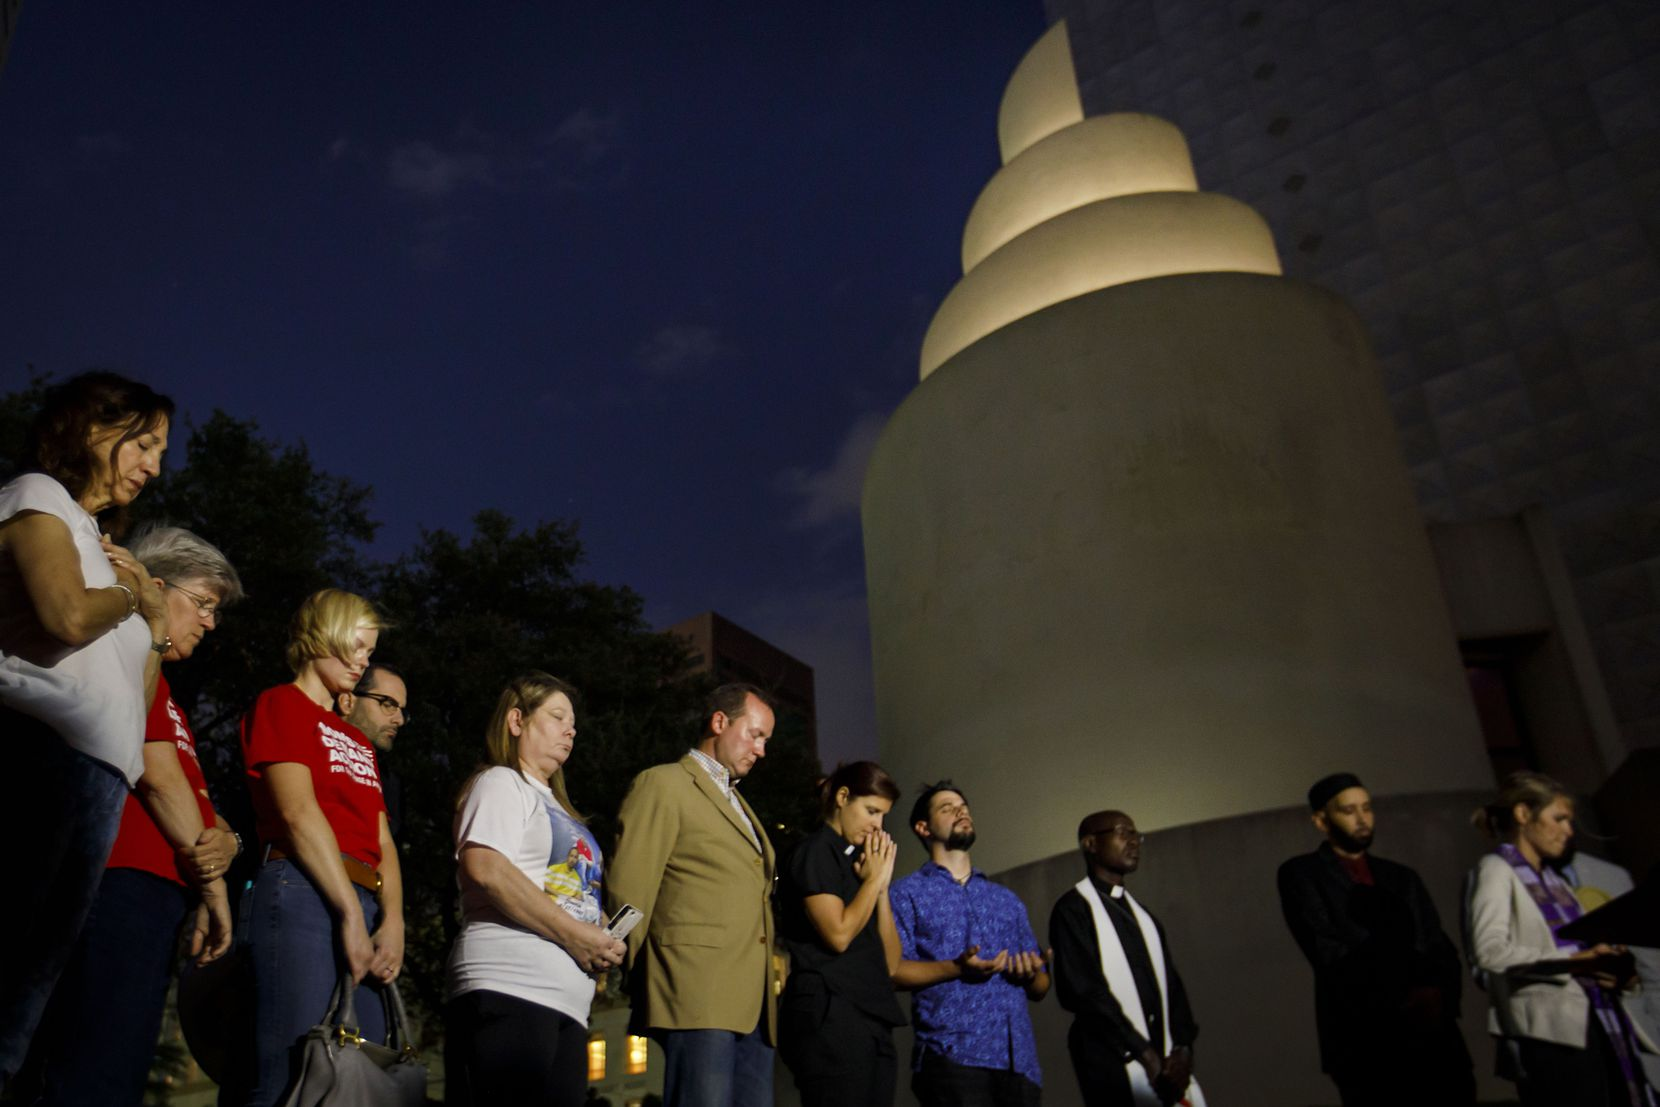 Activists, elected officials and faith leaders observe a moment of silence during a vigil at Thanks-Giving Square organized by Faith Forward Dallas in response to the mass shooting in Las Vegas on Monday, Oct. 2, 2017, in Dallas.